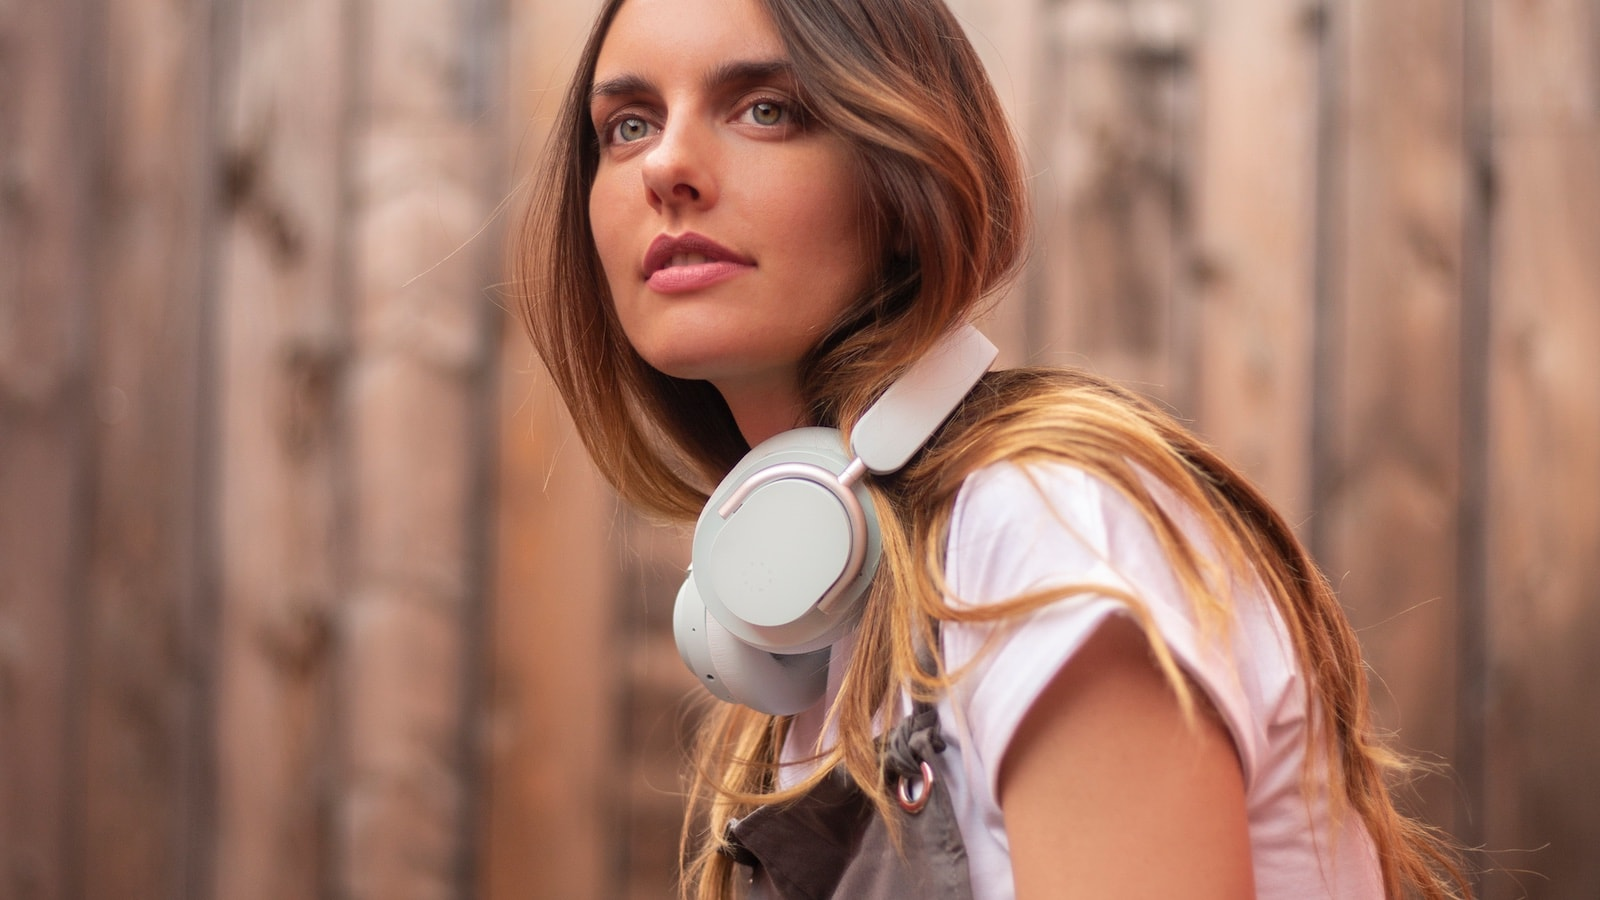 Know Calm Headphones have adjustable hush active noise cancellation